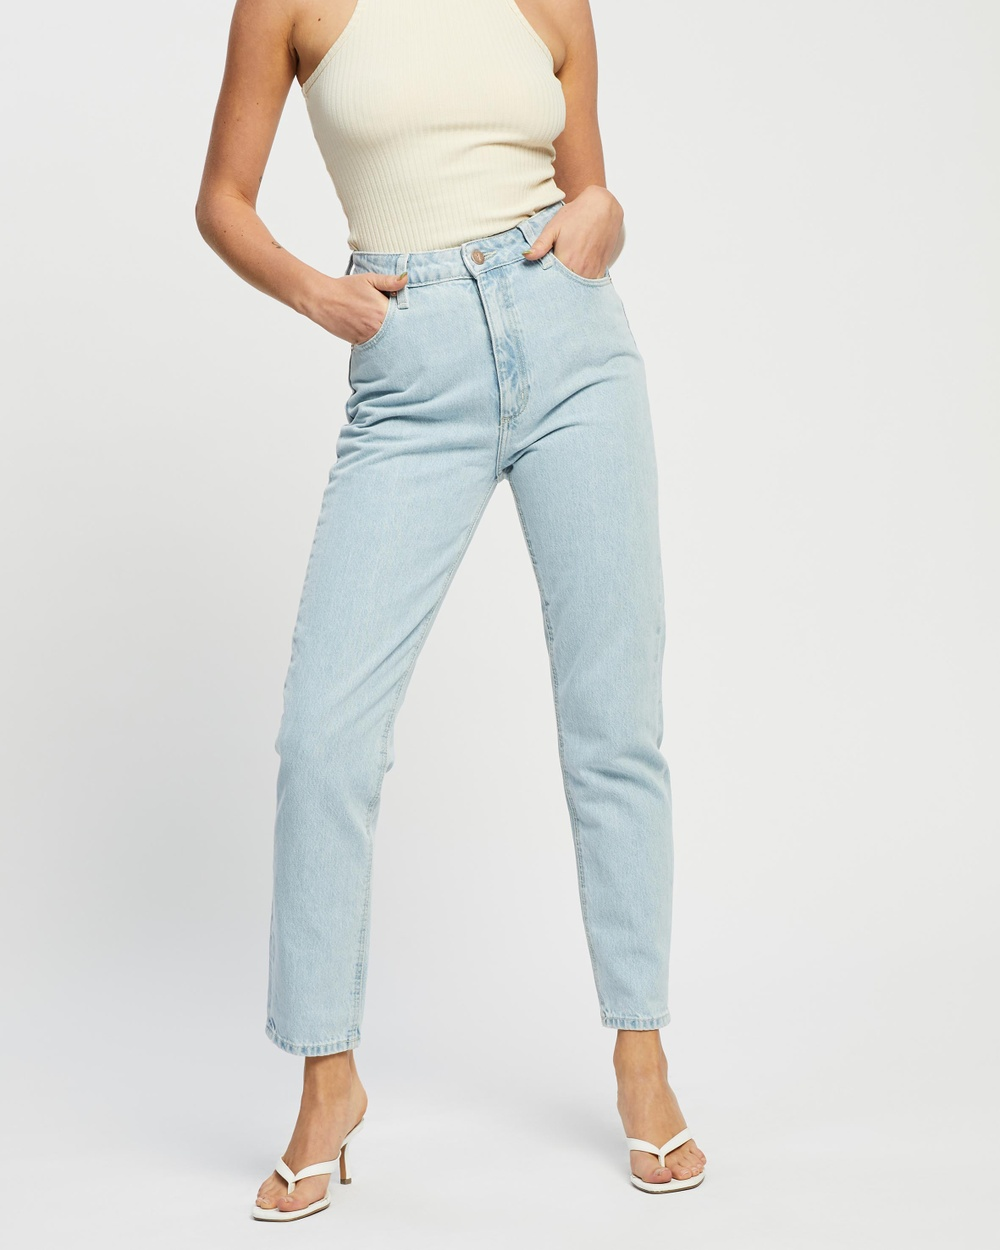 Abrand ICONIC EXCLUSIVE A '94 High Slim Jeans Daisy Blue & Clean